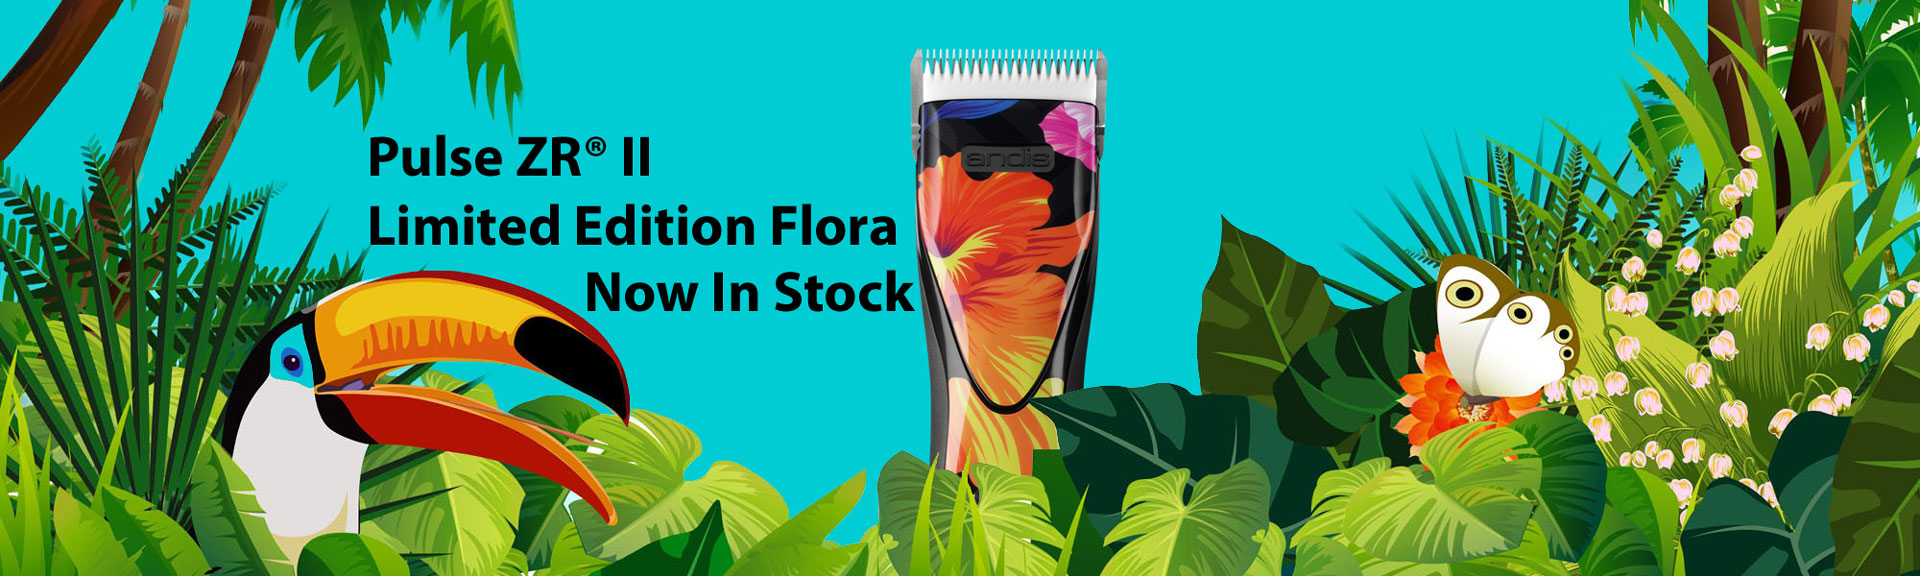 Andis Pulse Flora Limited Edition